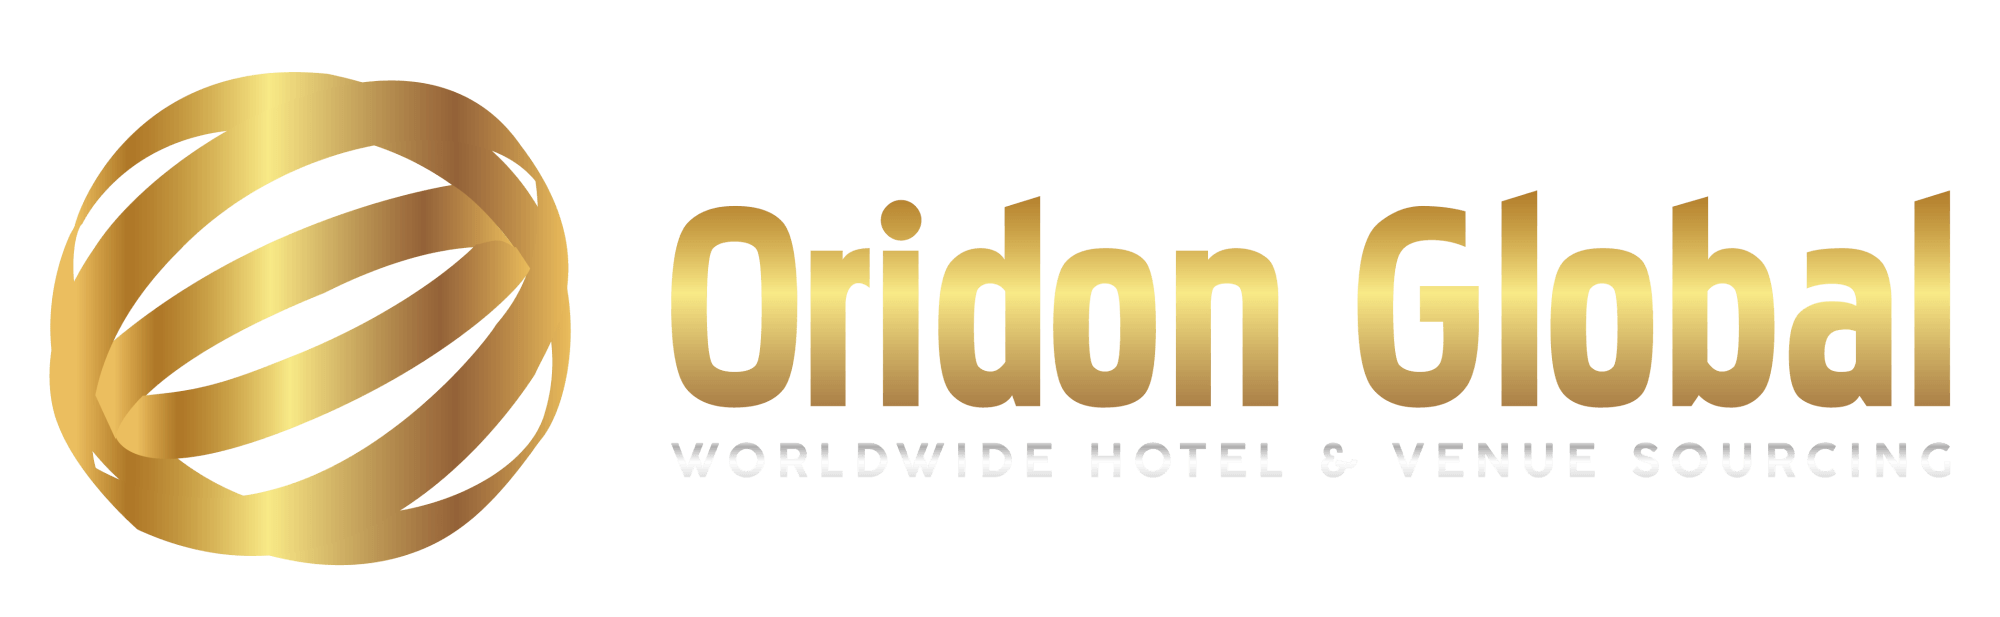 Oridon — Worldwide Hotel & Venue Sourcing Services